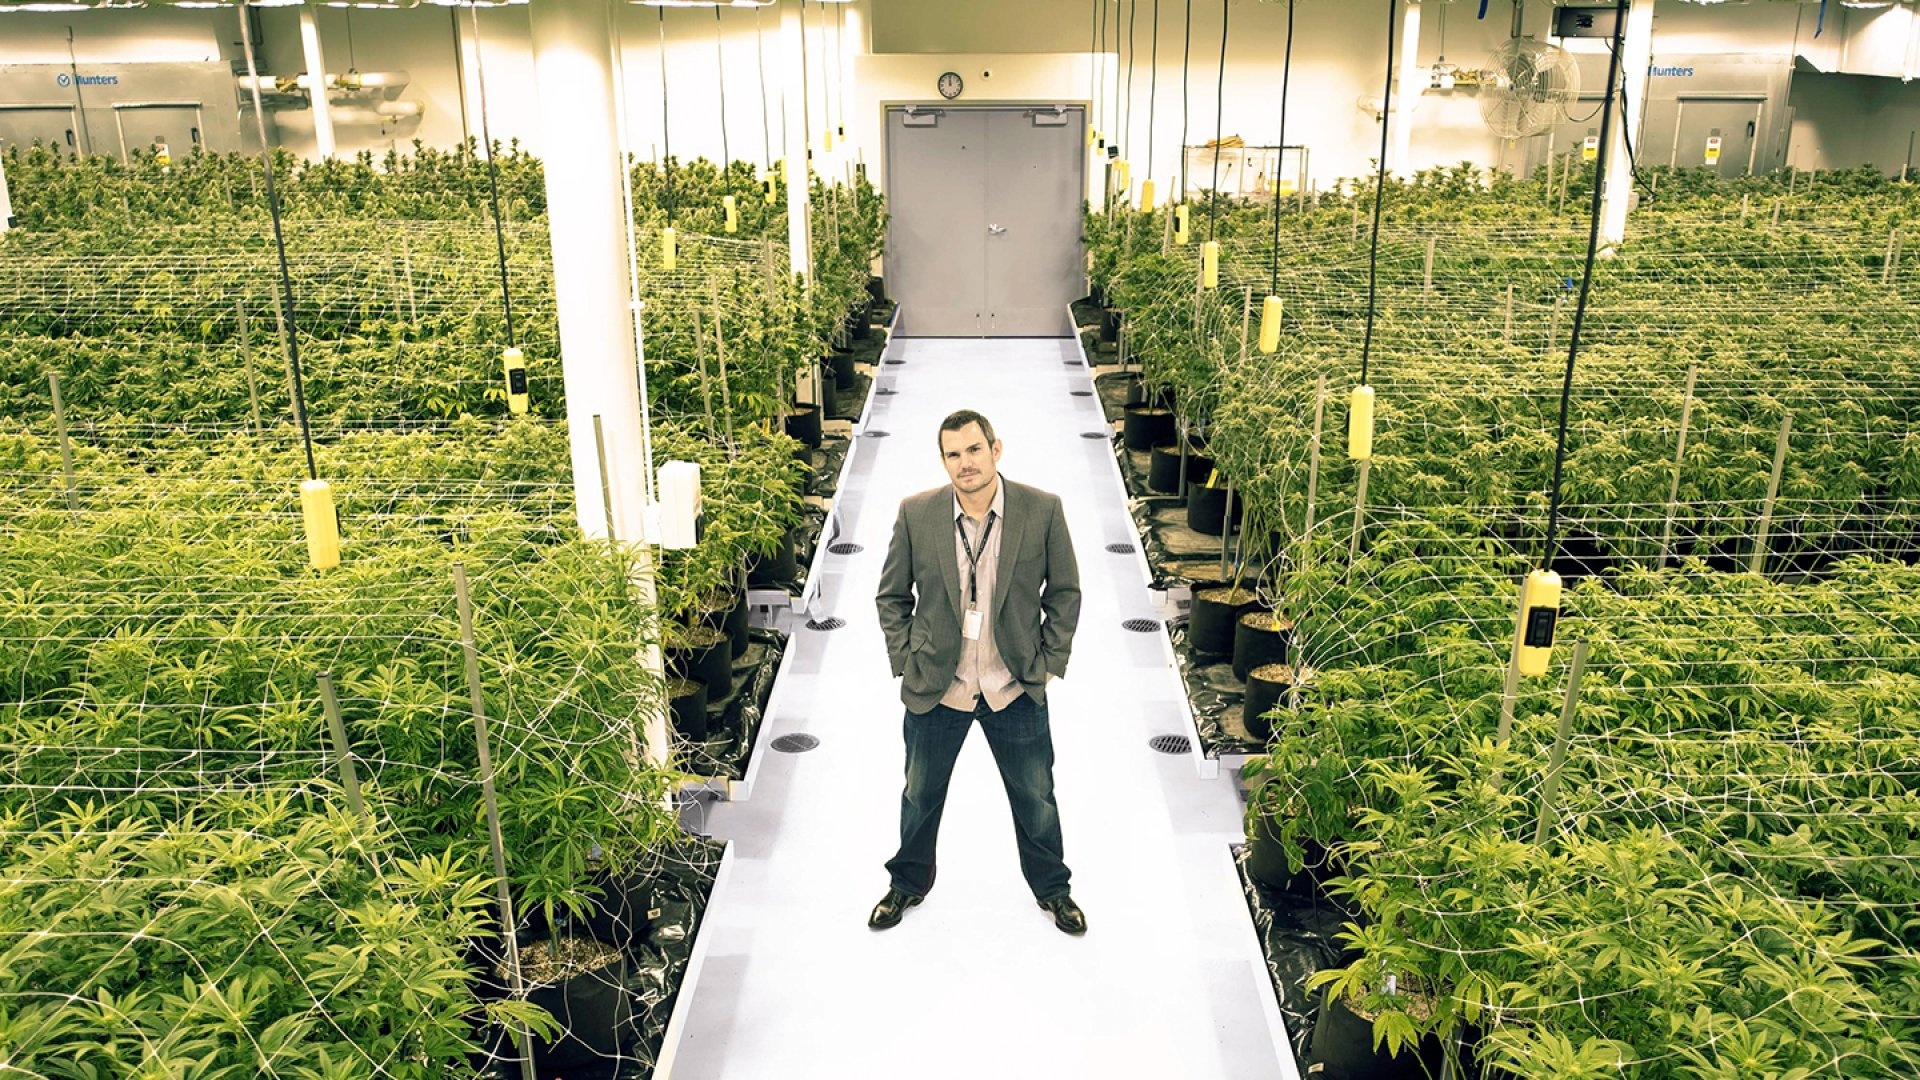 Joshua Ginsberg is a co-founder of Native Roots, one of the largest chains of marijuana retail shops in Denver. Ginsberg and his partners Peter Knobel and Rhett Jordan own 59 active licenses, more than anyone else in the industry.